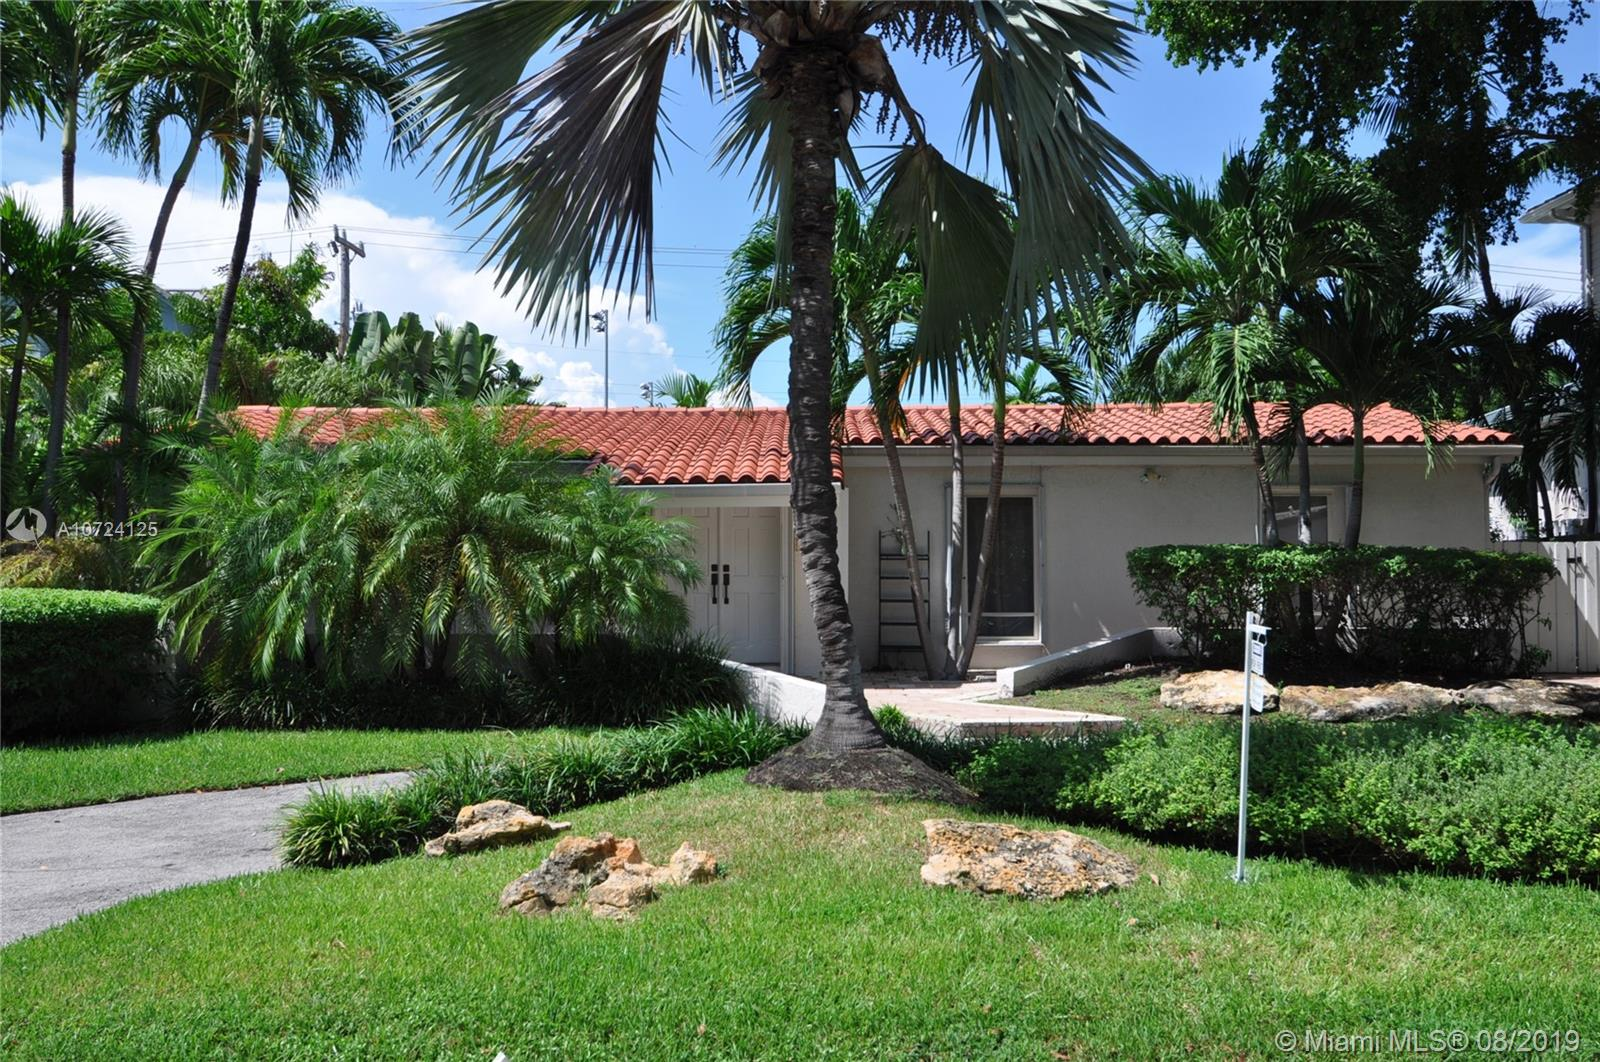 145  Buttonwood Dr  For Sale A10724125, FL